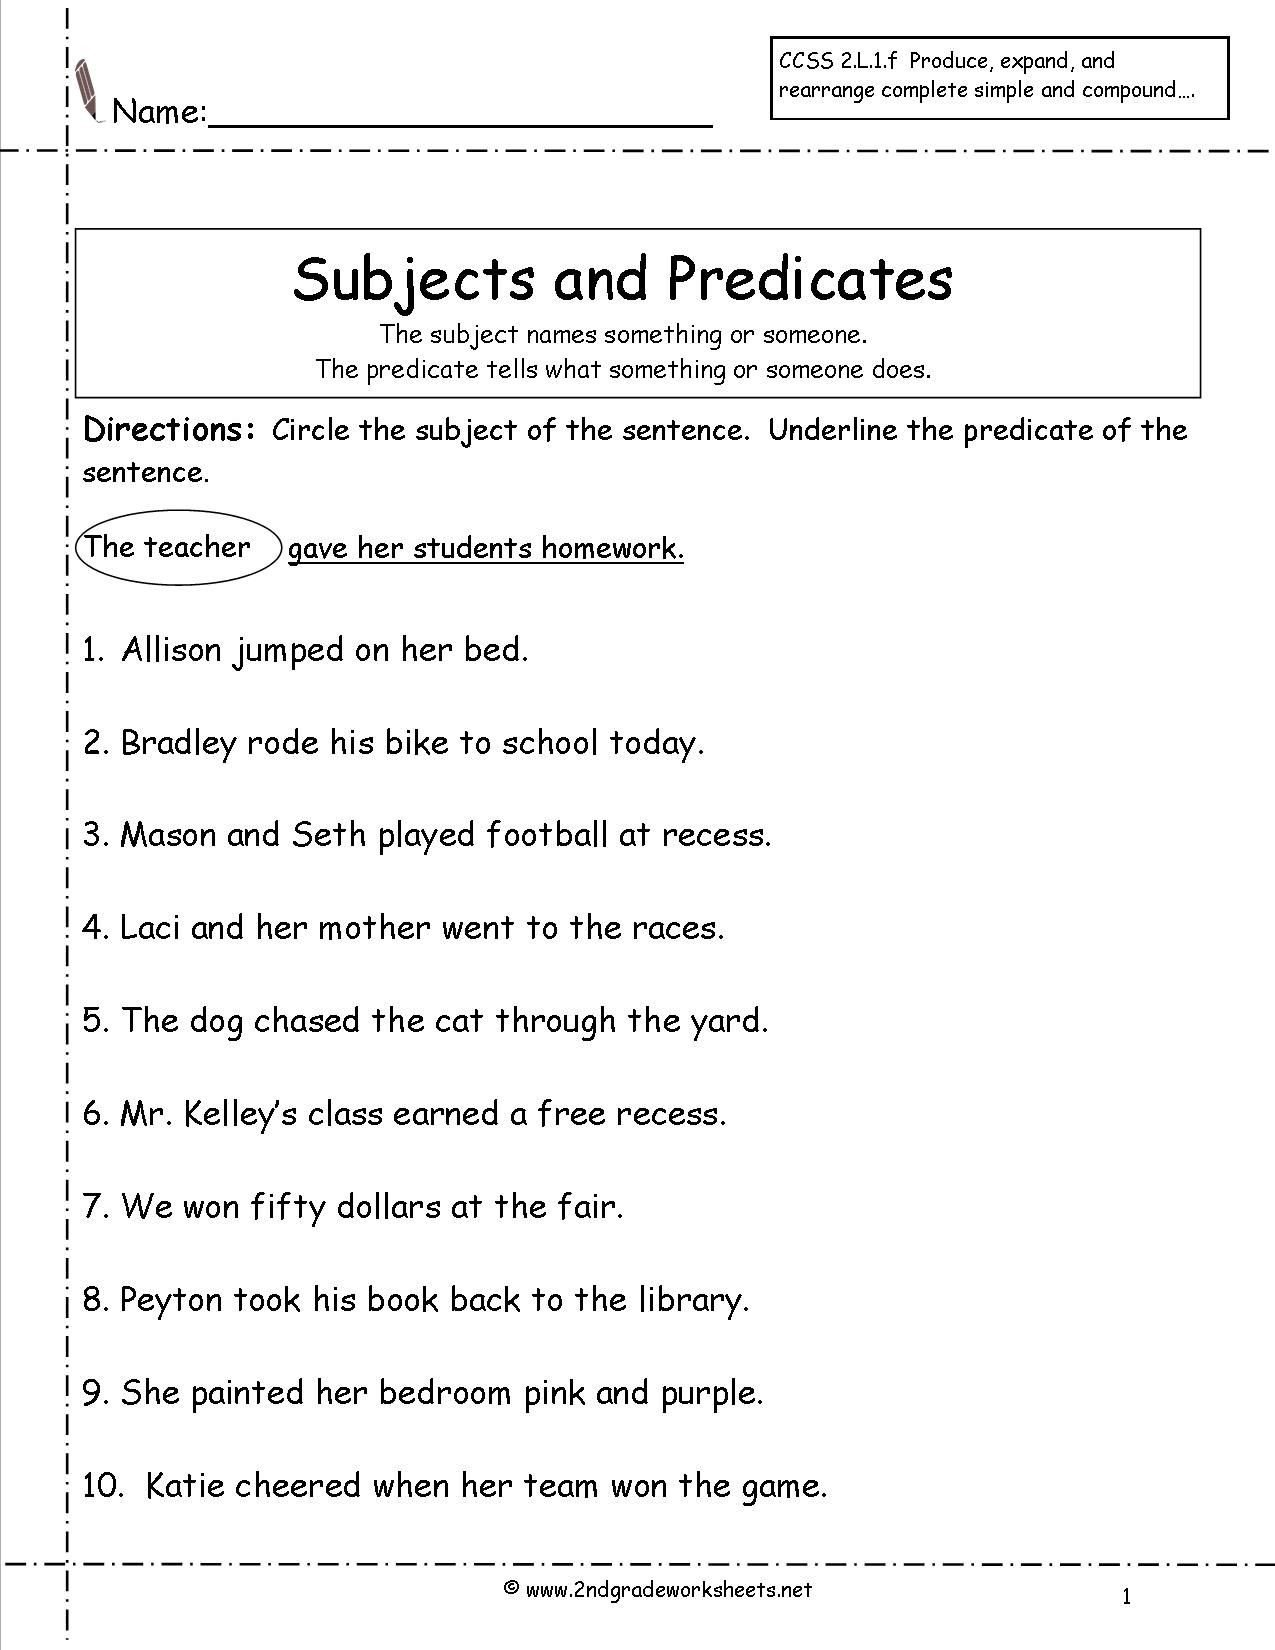 Free Subject and Predicate Worksheets Subject Predicate Worksheets 2nd Grade Google Search